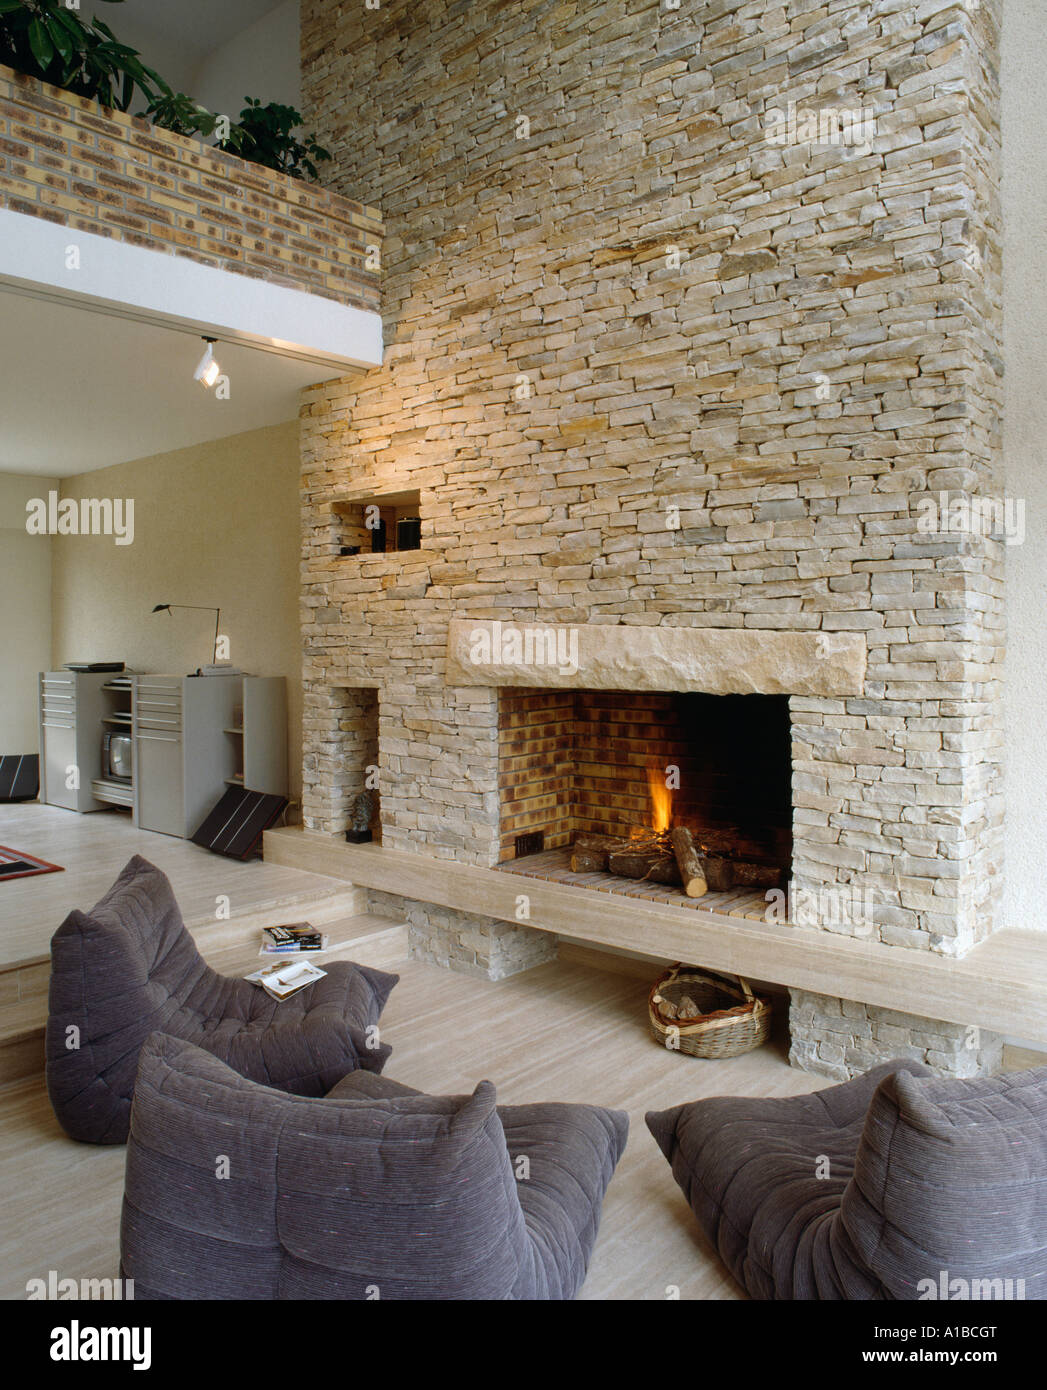 Fire Stones For Fireplace Lit Fire In Fireplace In Stone Wall Of Barn Conversion With